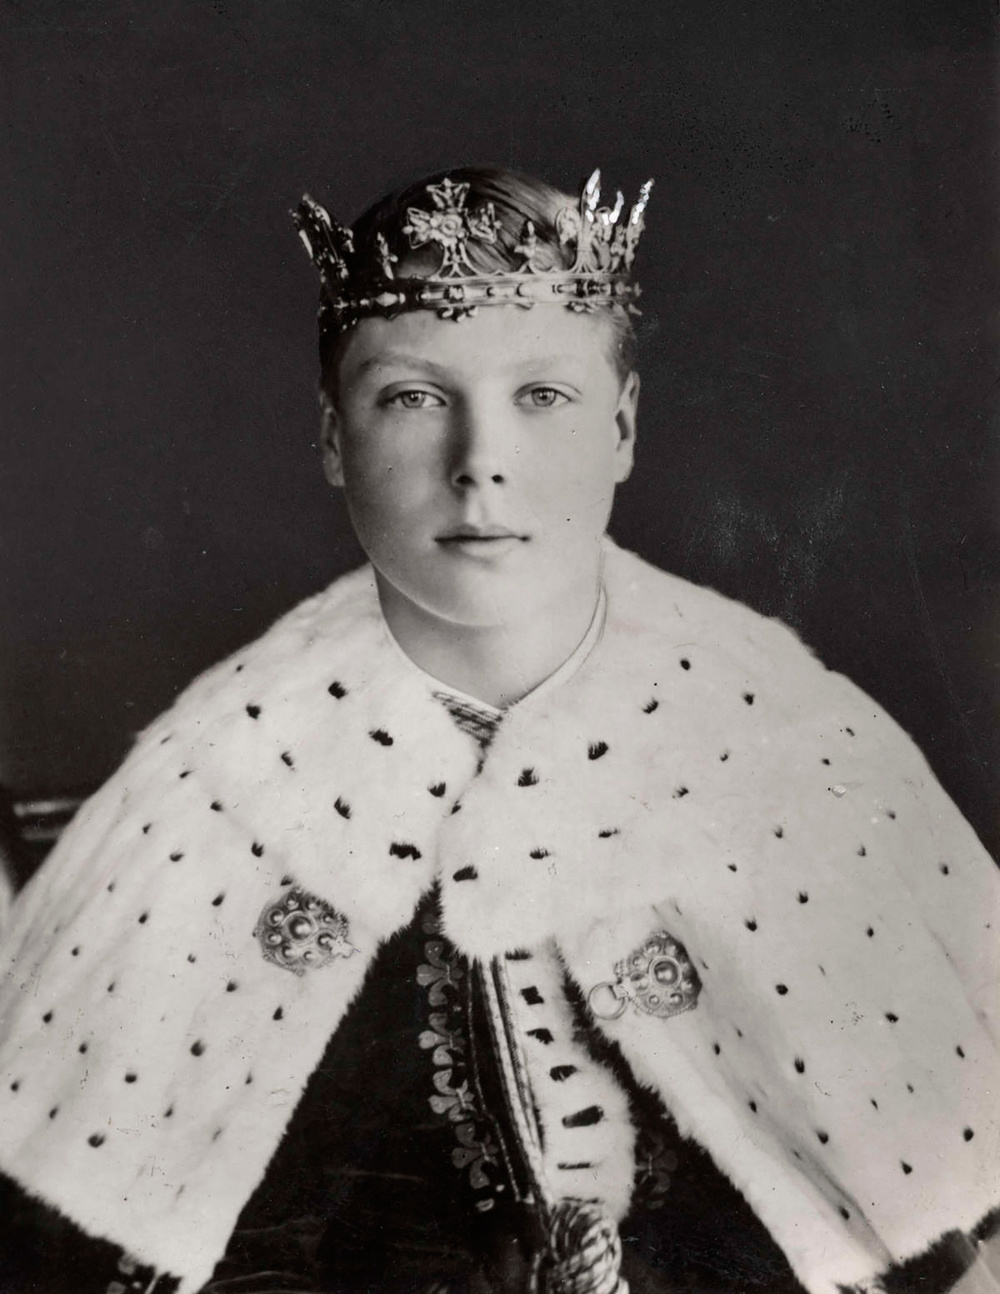 Young Prince Edward (age 17)—later King Edward VIII and then the Duke of Windsor—in robes and coronet at his investiture as Prince of Wales in 1911. He acquired from John G. Hardy the black & white district check that would later bear his name.